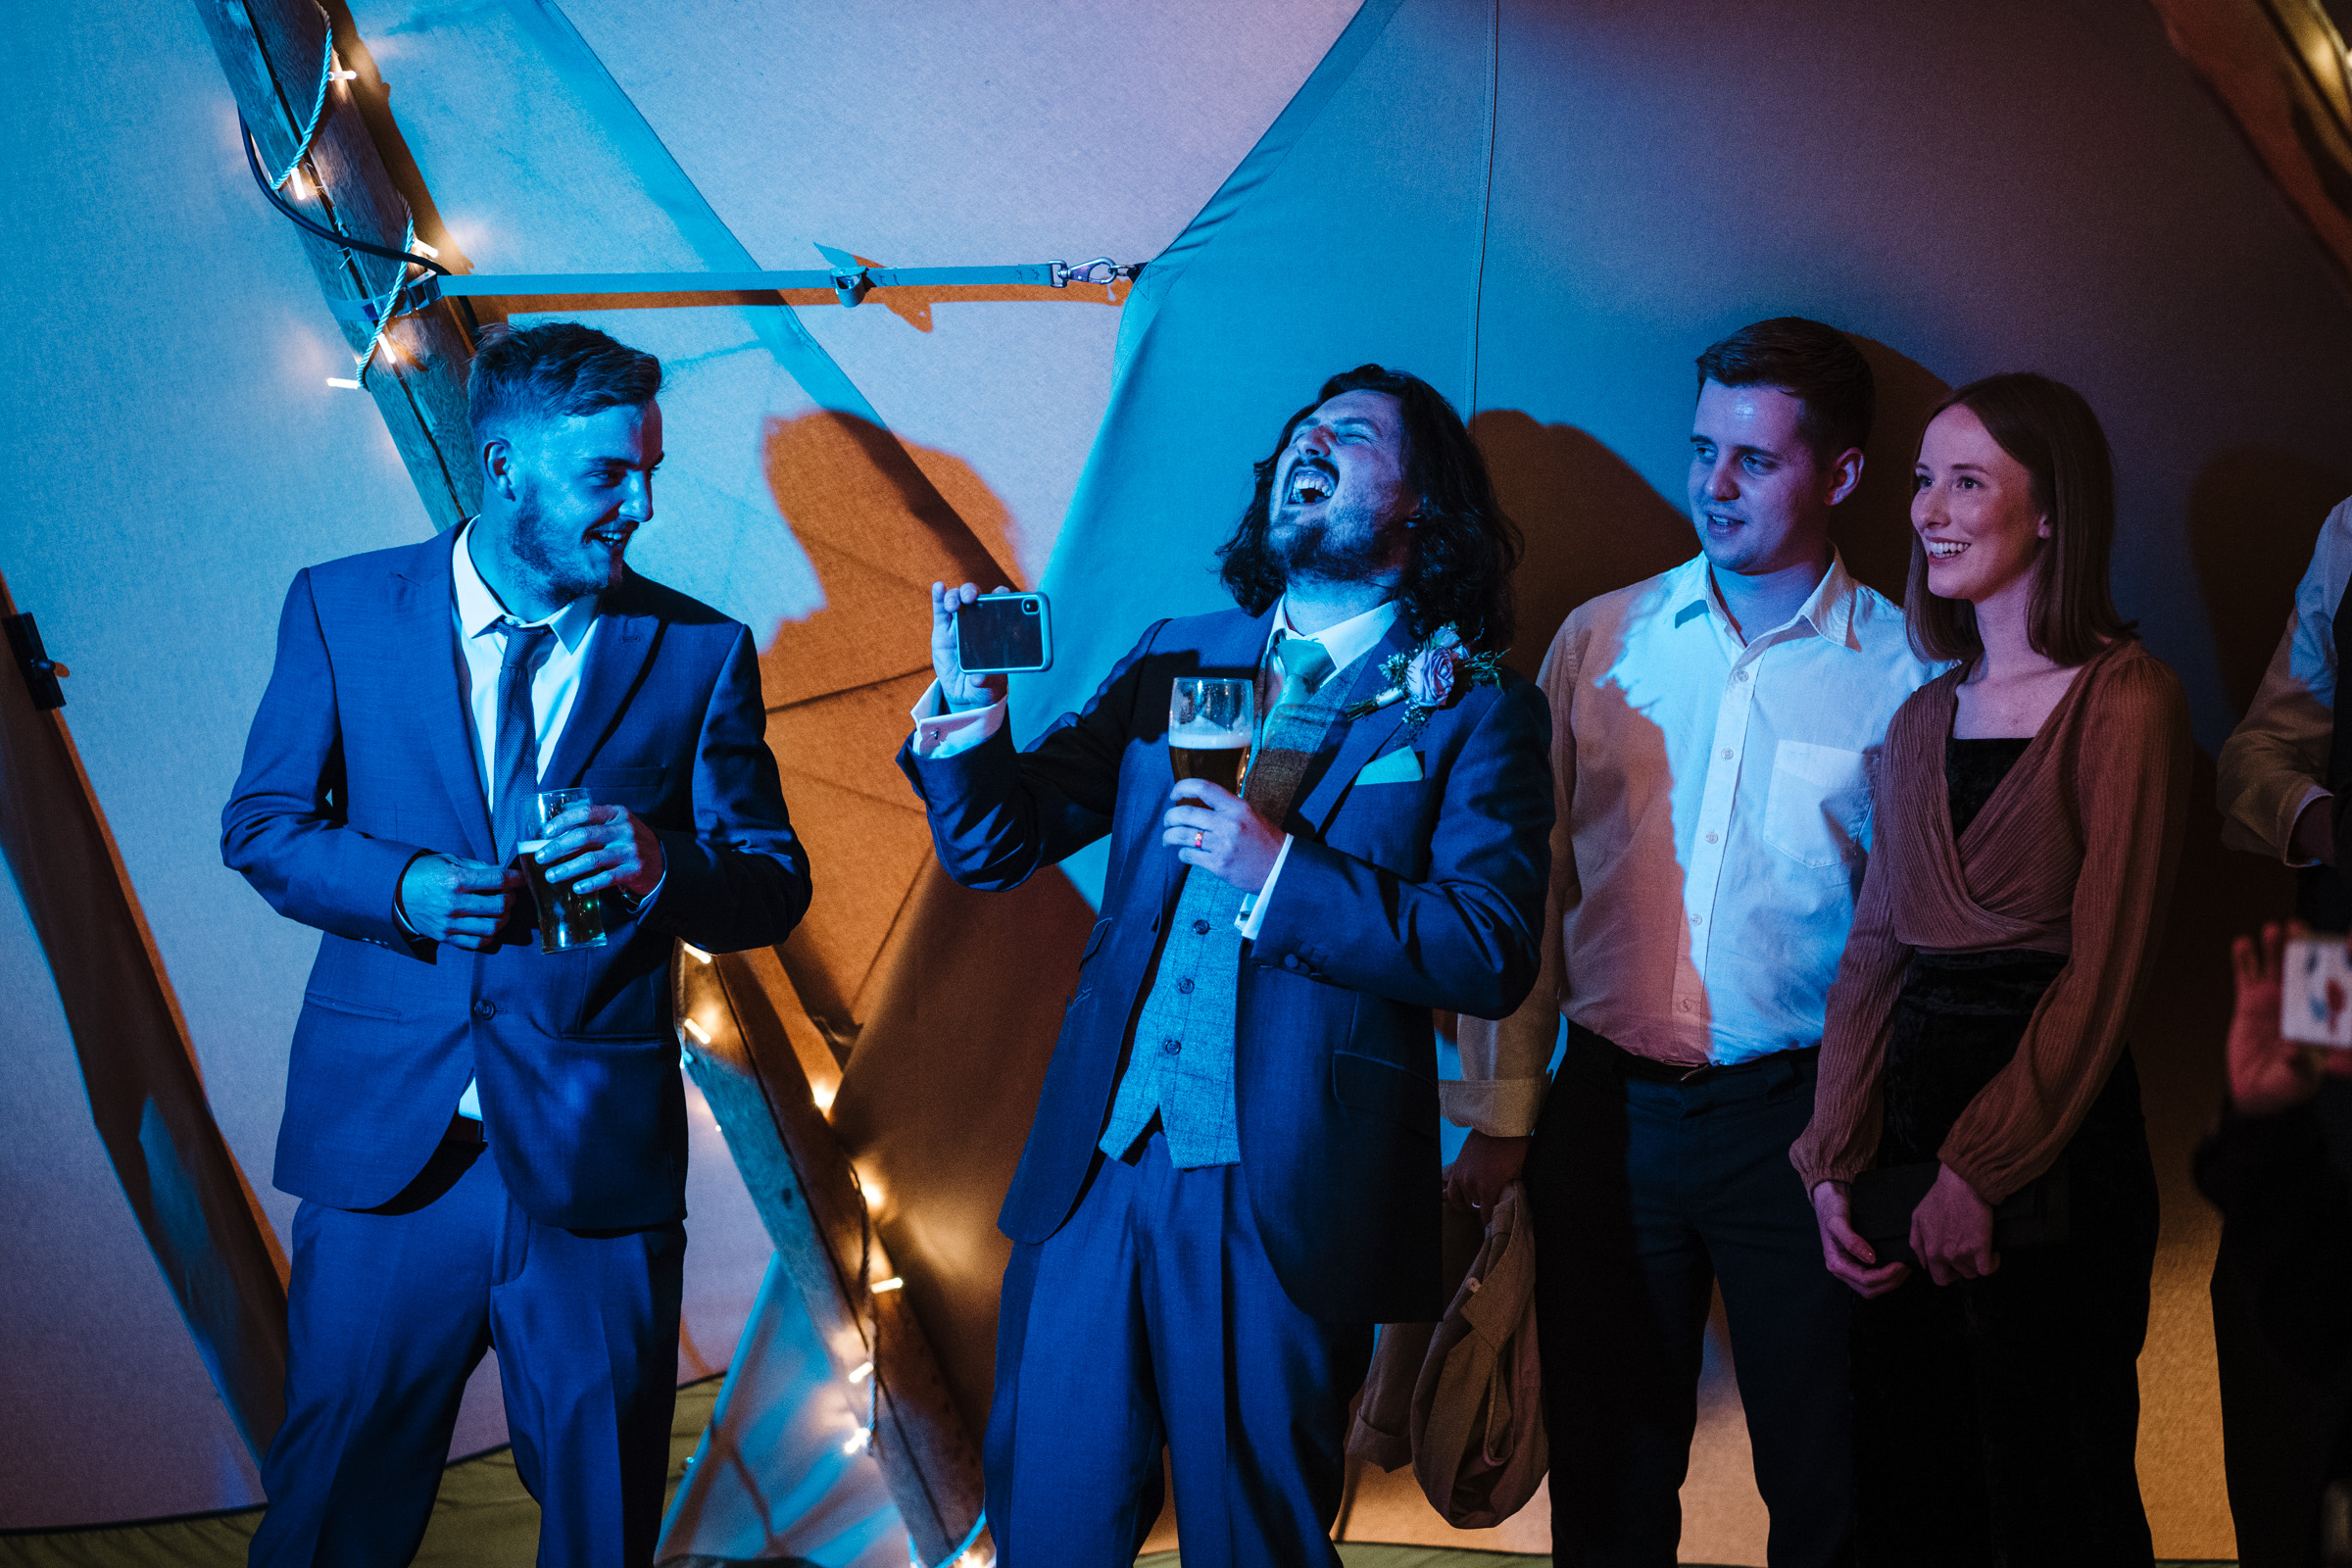 Groom singing to live band on dancefloor